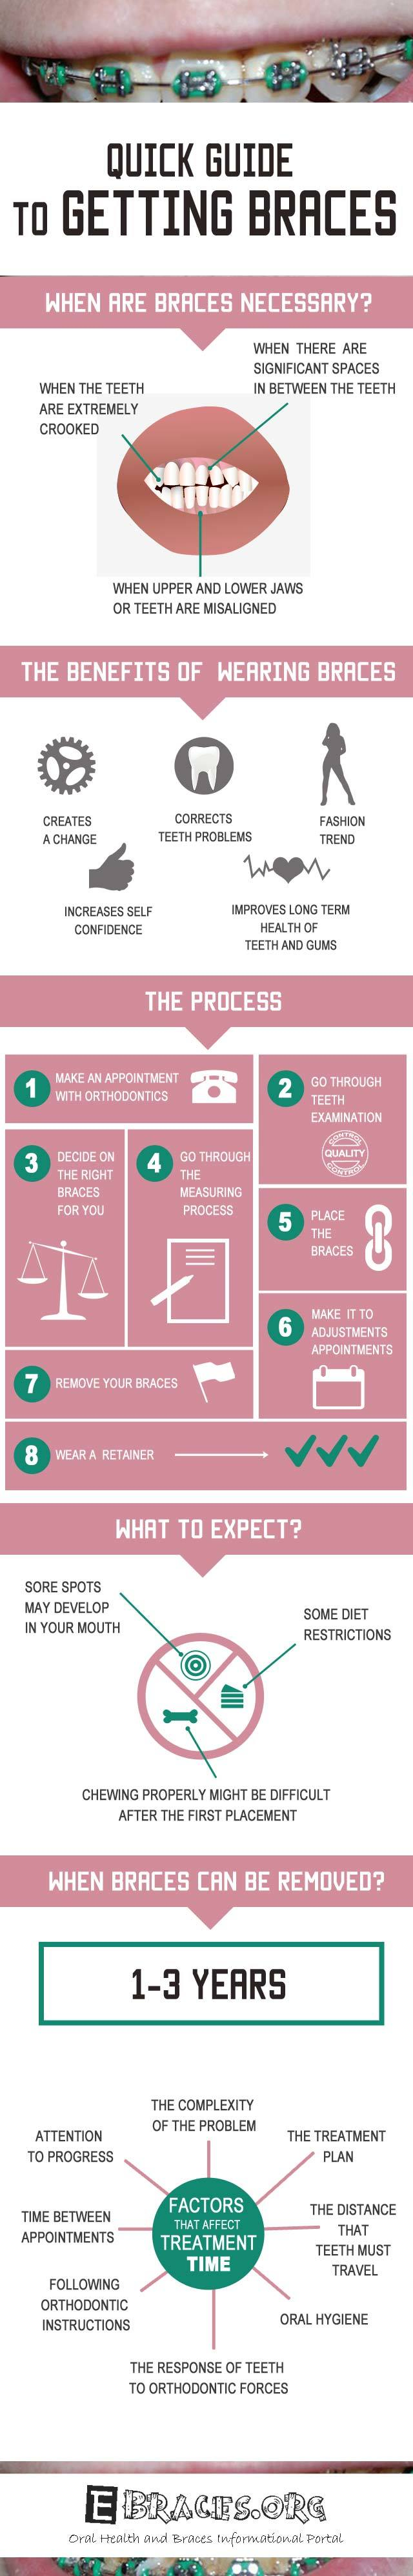 quick guide to getting braces infographic